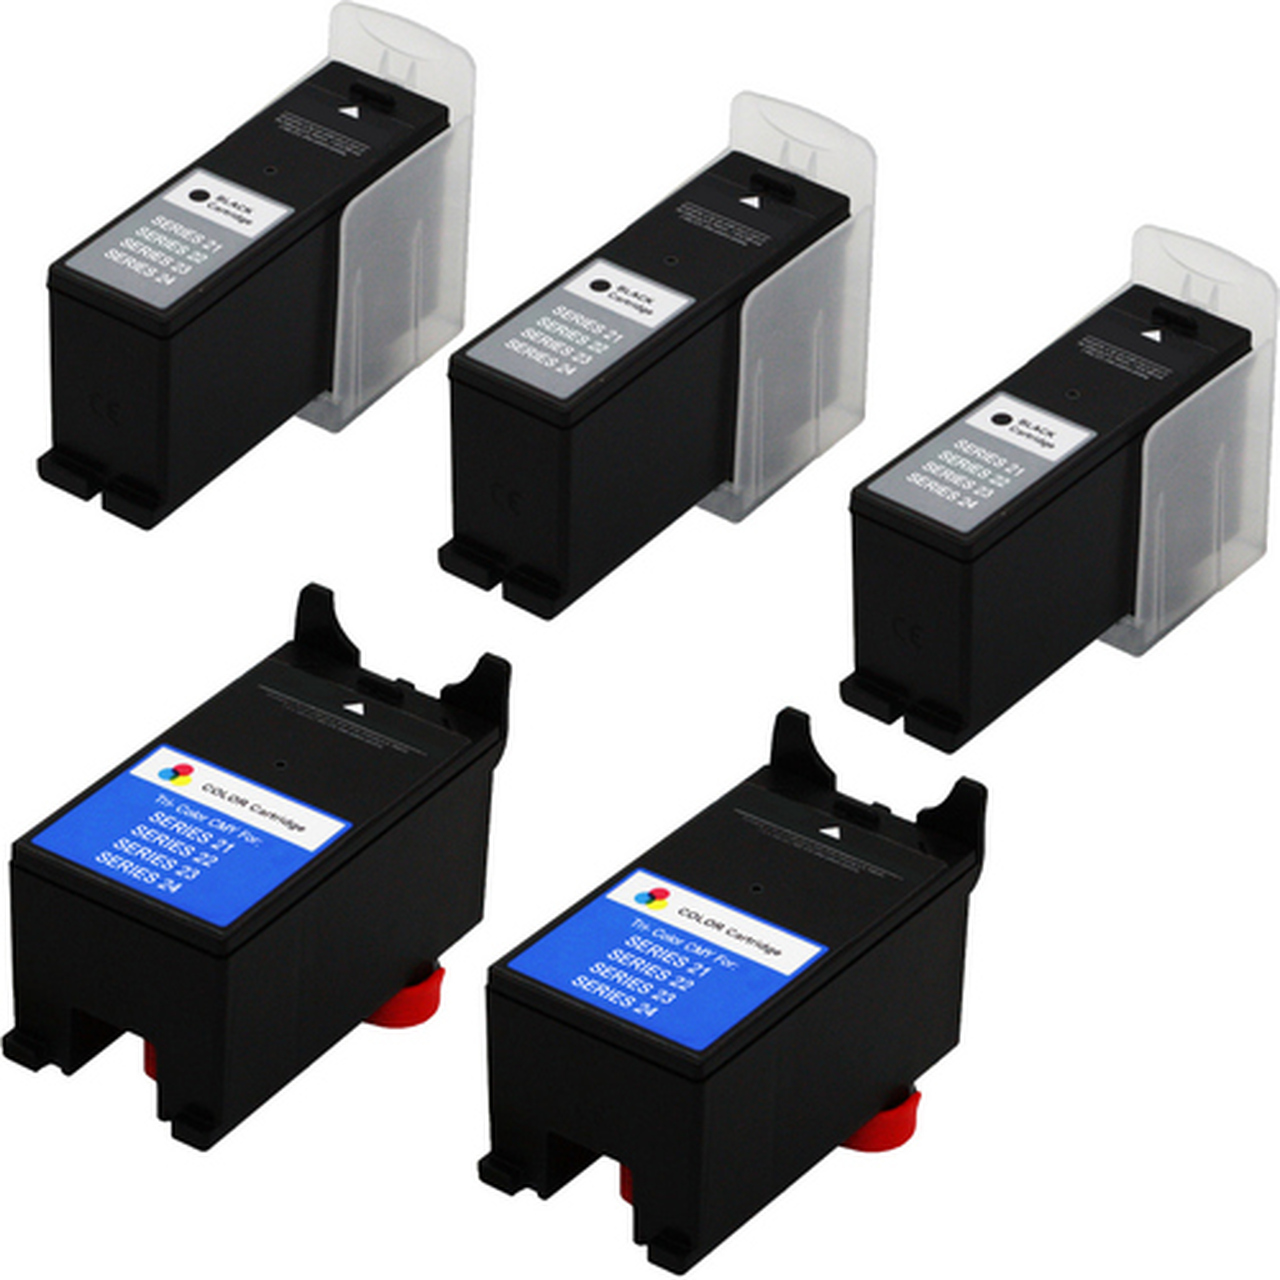 T112N/_4PK SuppliesMAX Compatible Replacement for Dell P713W//V715W Color High Yield Inkjet Series 24 4//PK